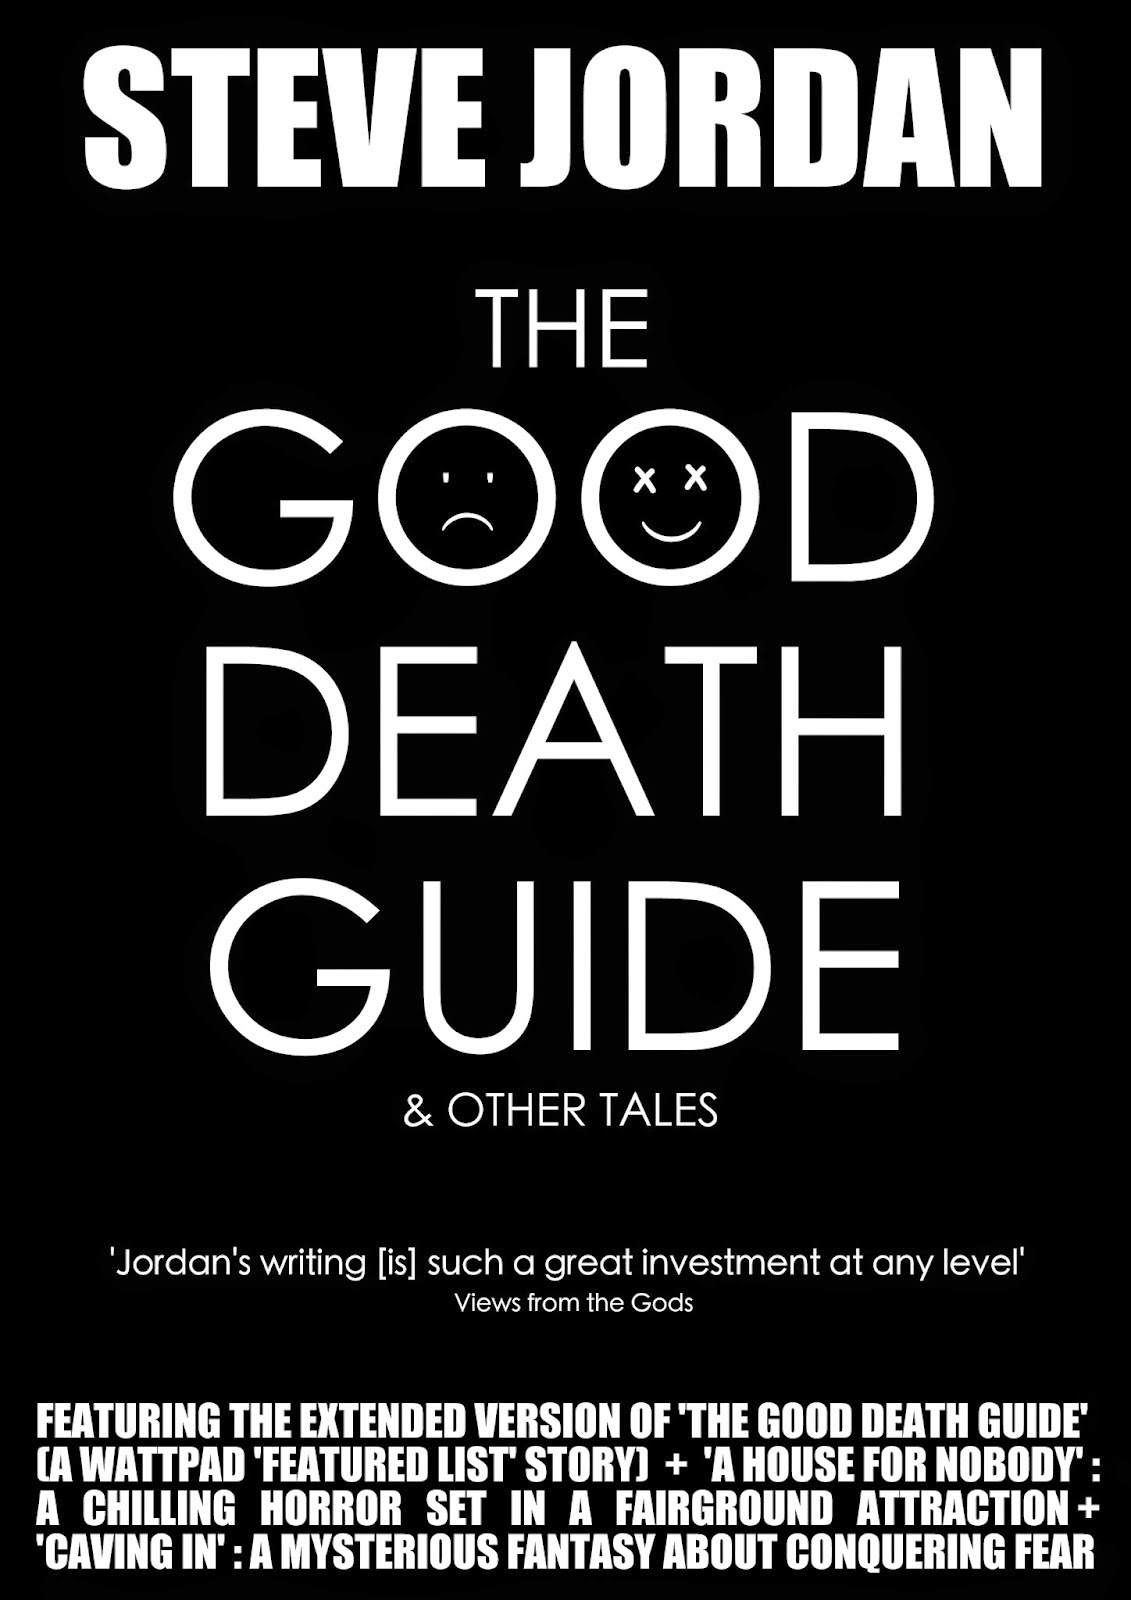 THE GOOD DEATH GUIDE & OTHER TALES